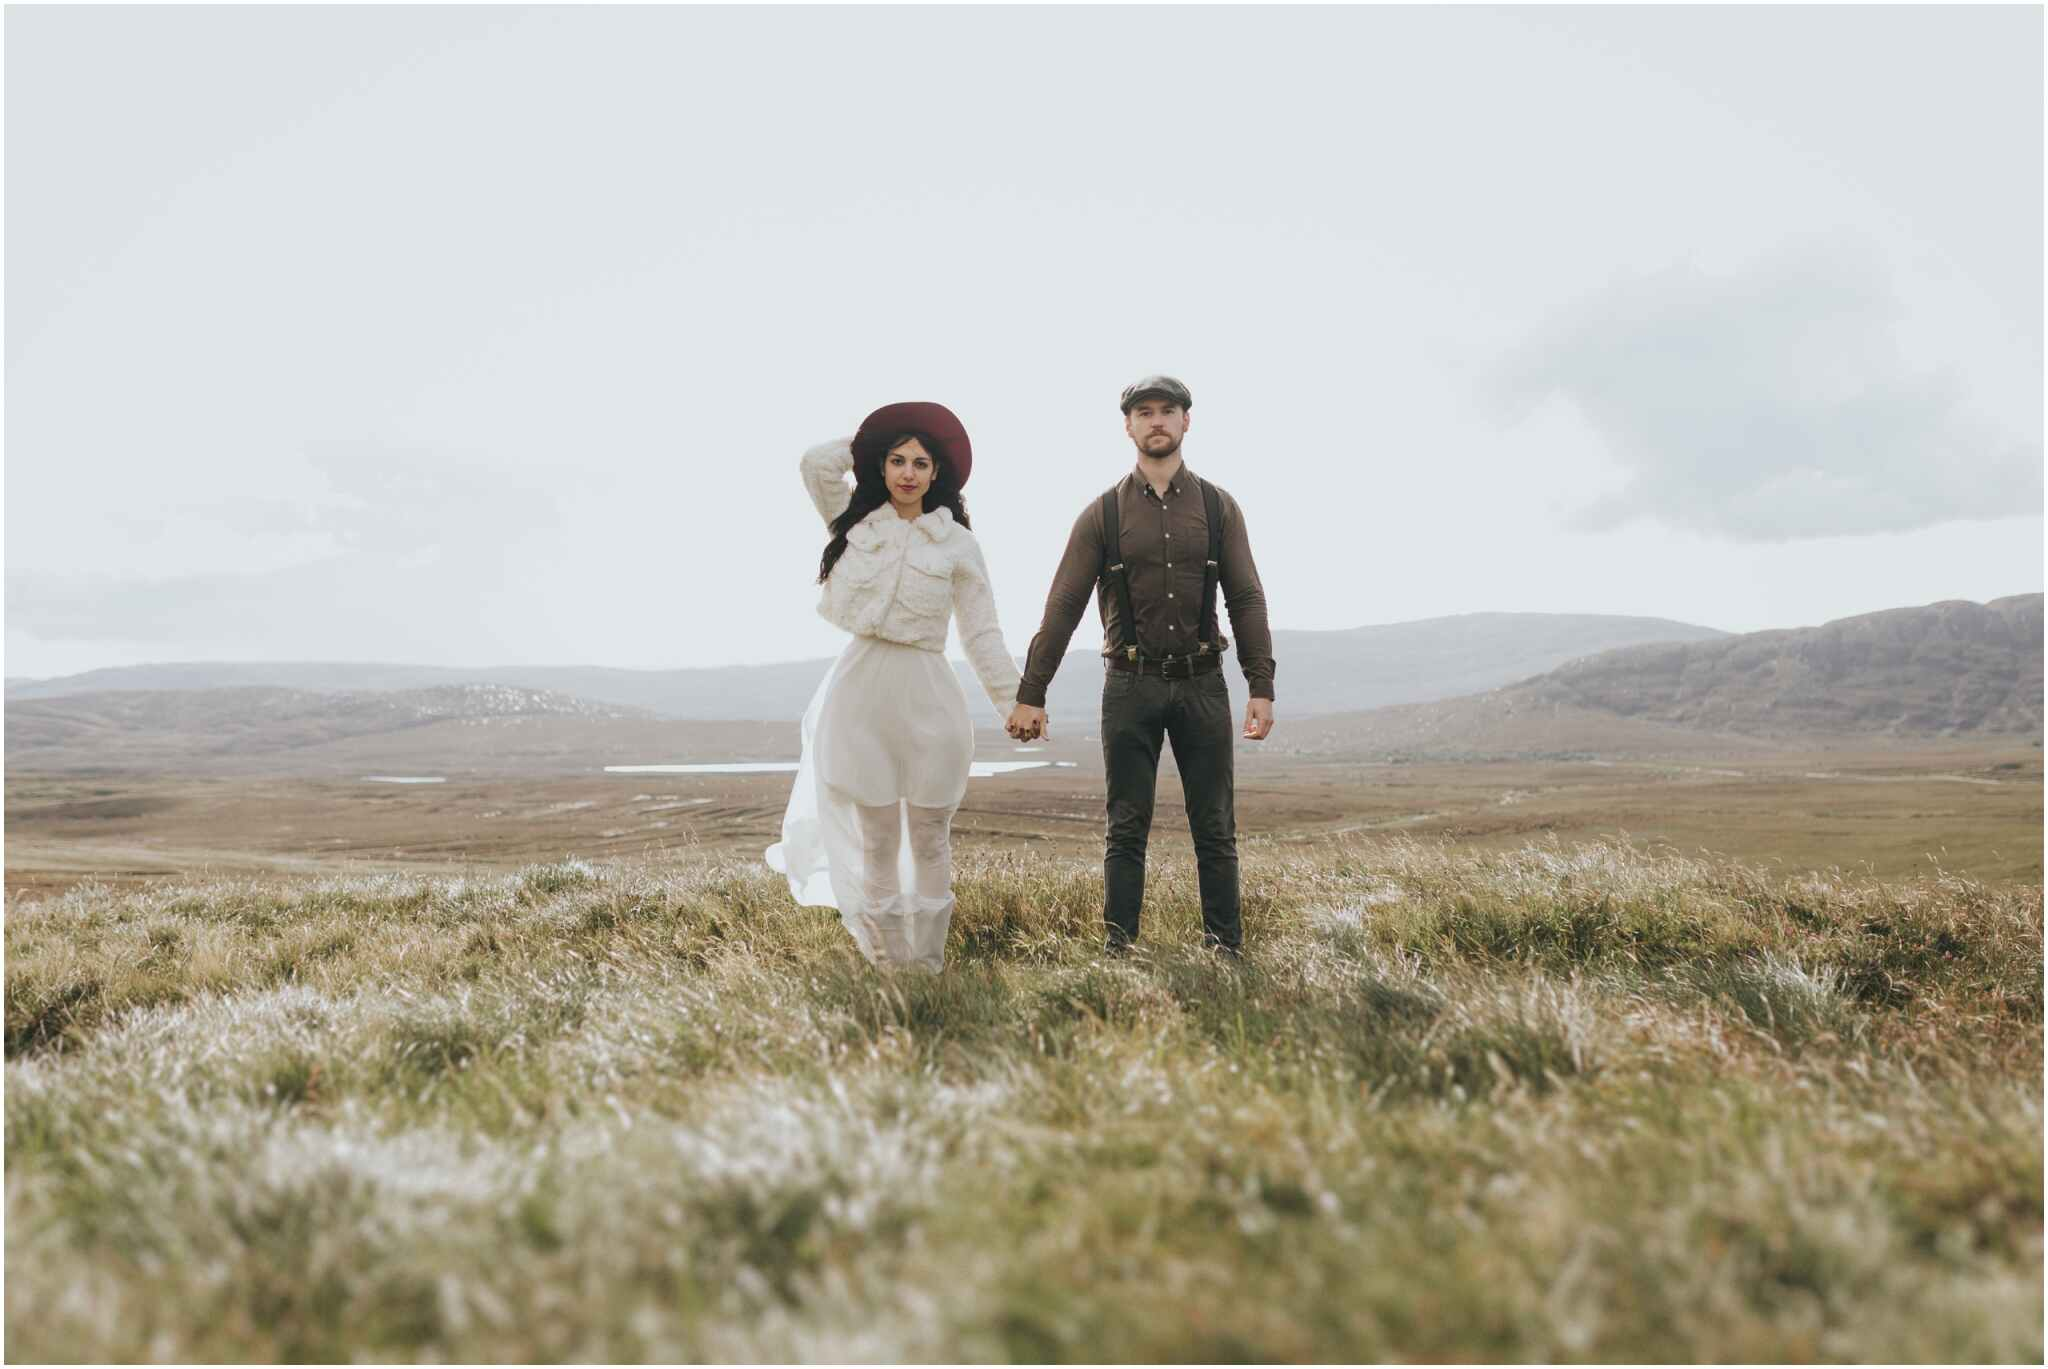 Rachel + David - Hiking Elopement in Muckish Mountain and Poisoned Glen, Donegal 8